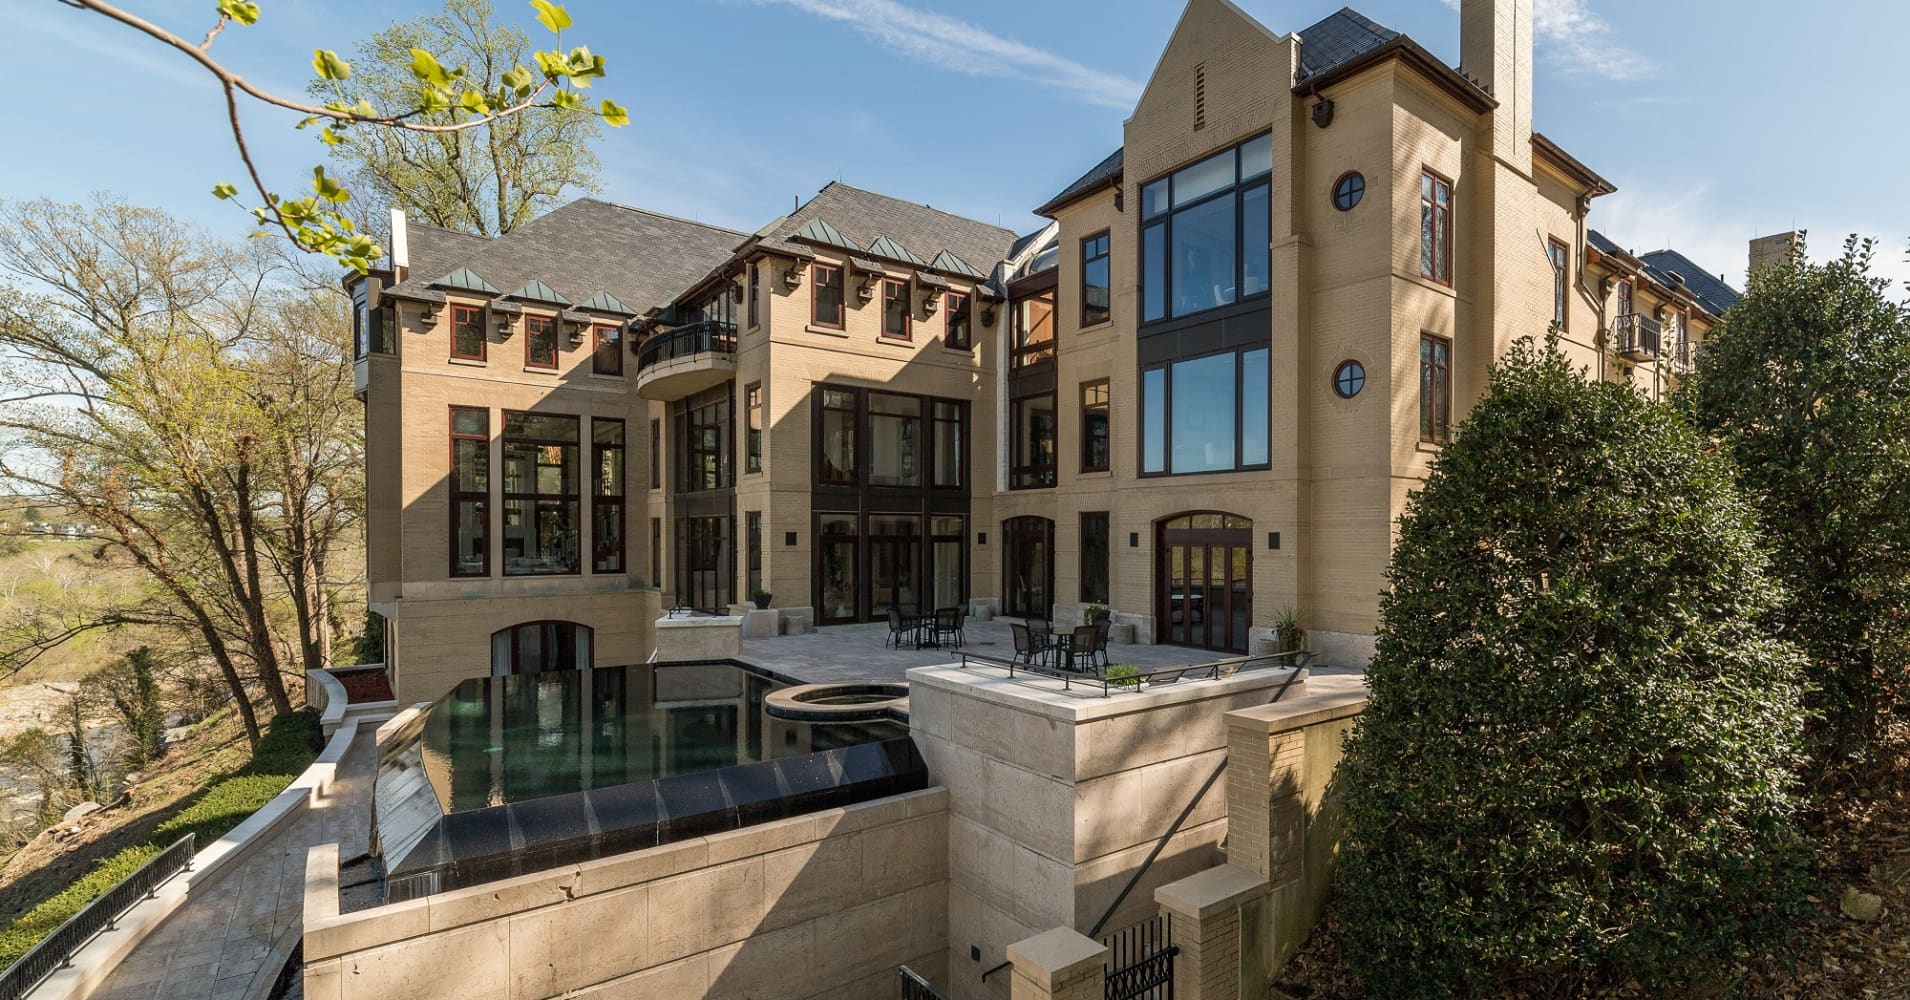 Photos Of The Most Expensive Home For Sale In The Washington Dc Area